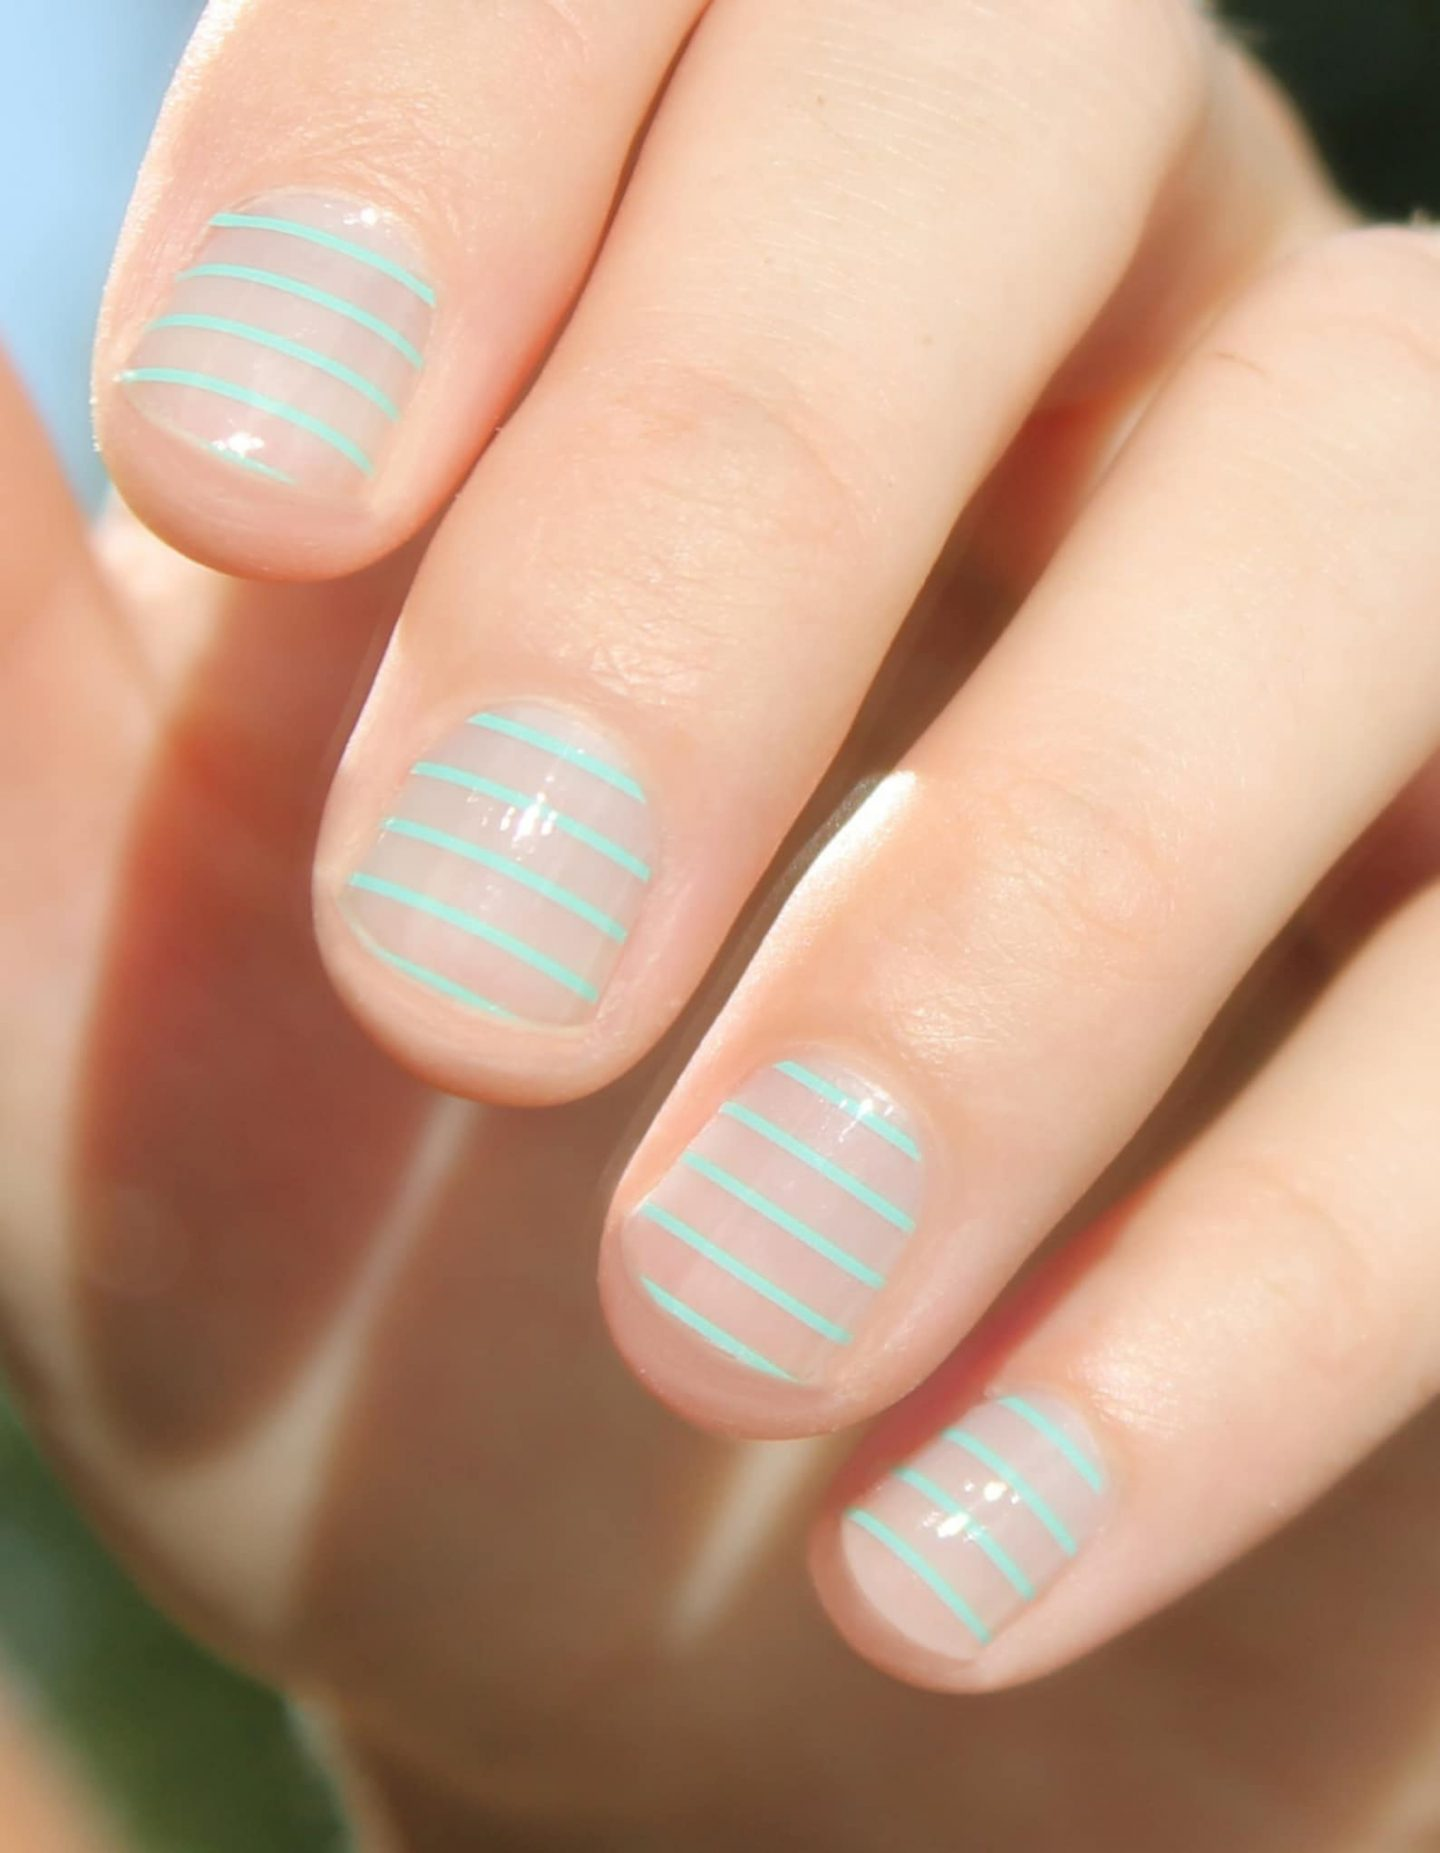 Short mint green nails with stripes